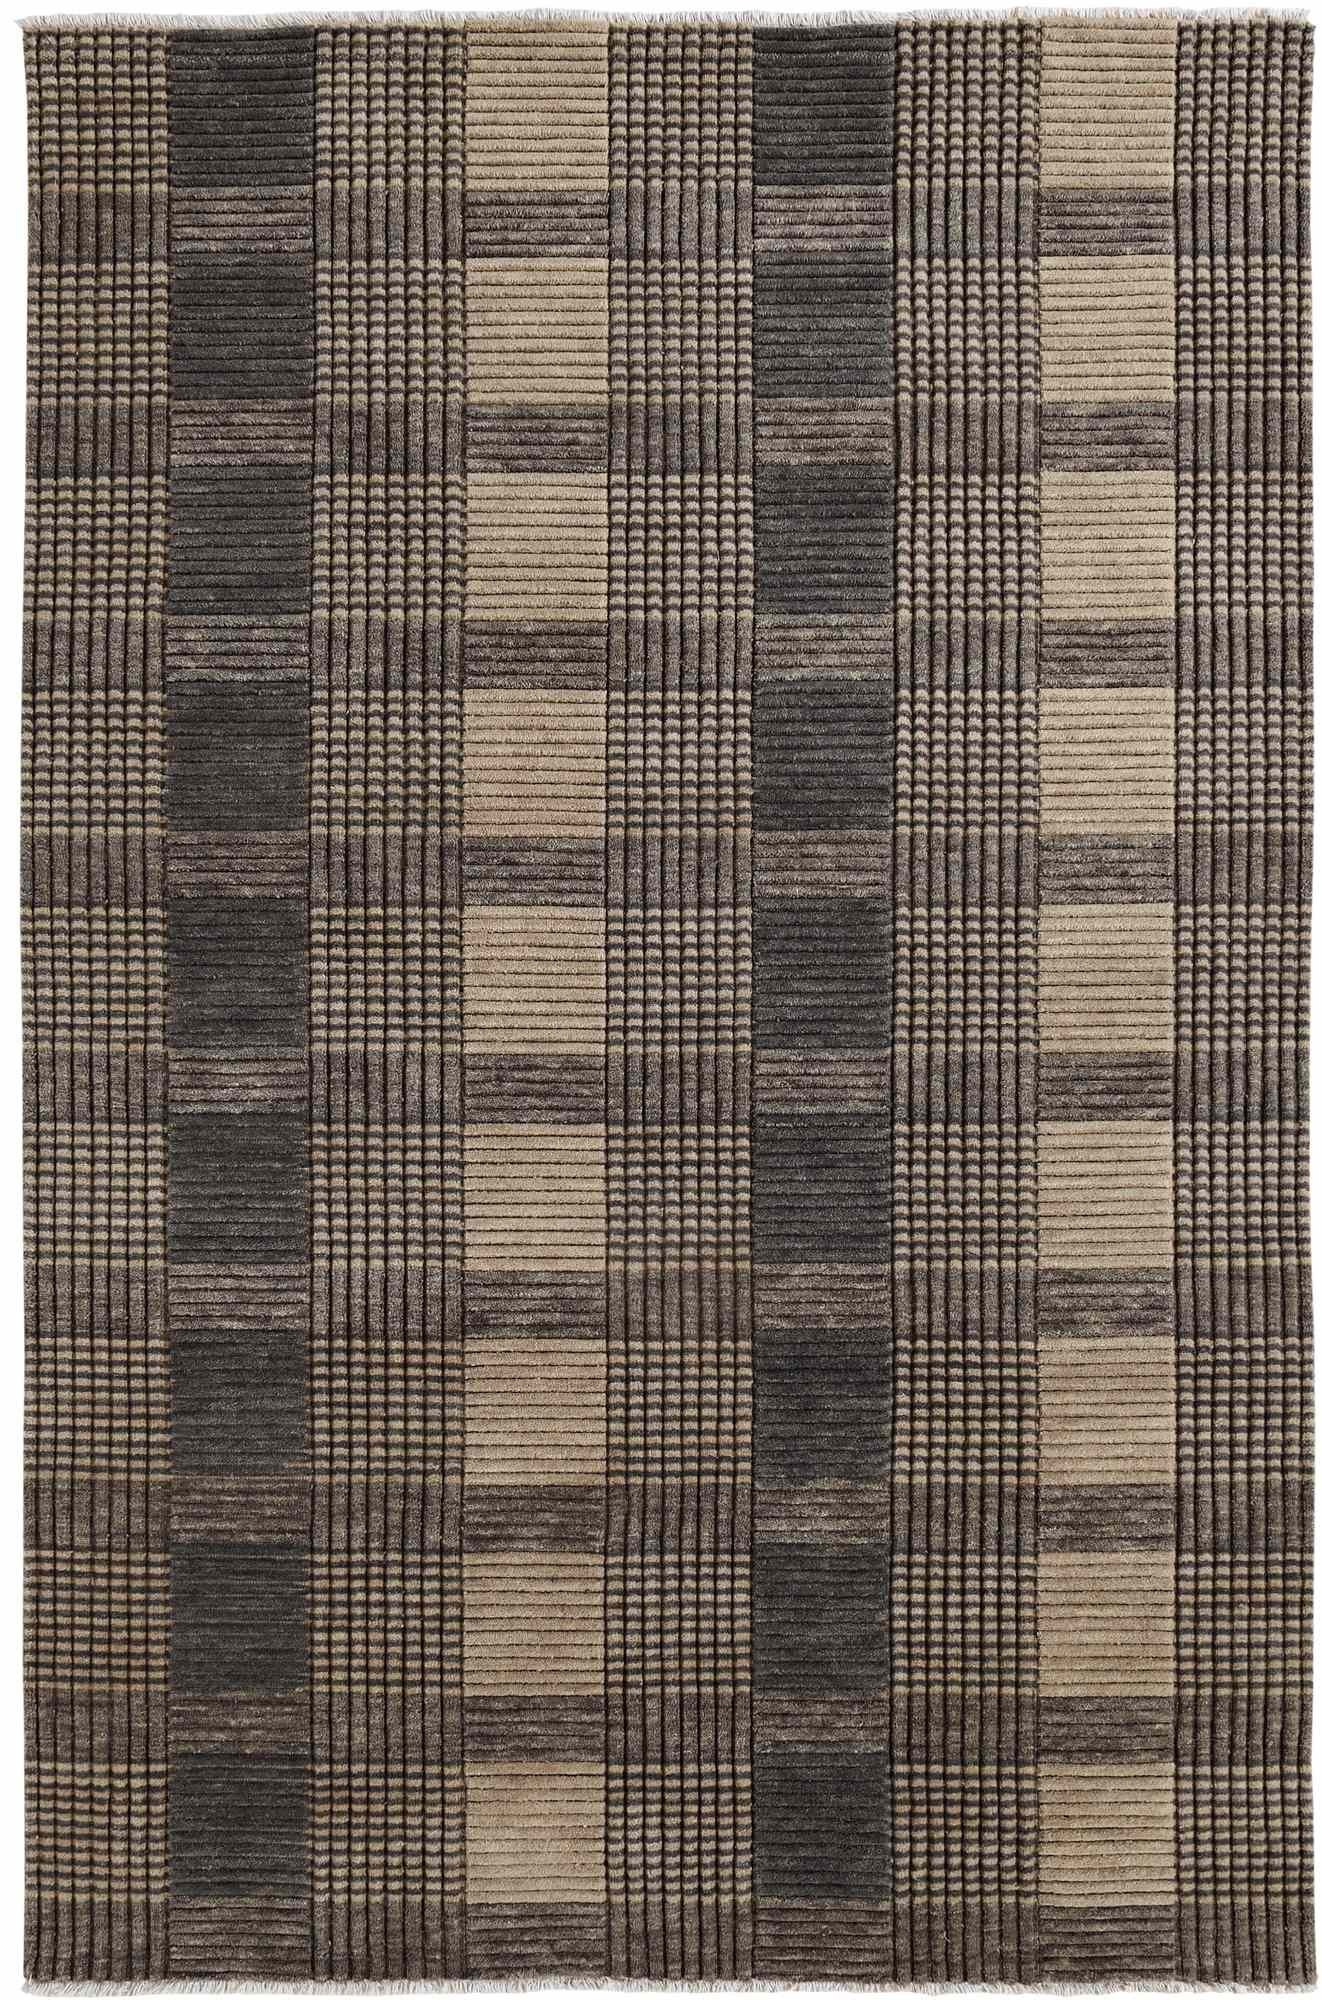 Dynamic Rugs Lounge Geometric Grey 9899 Area Rug